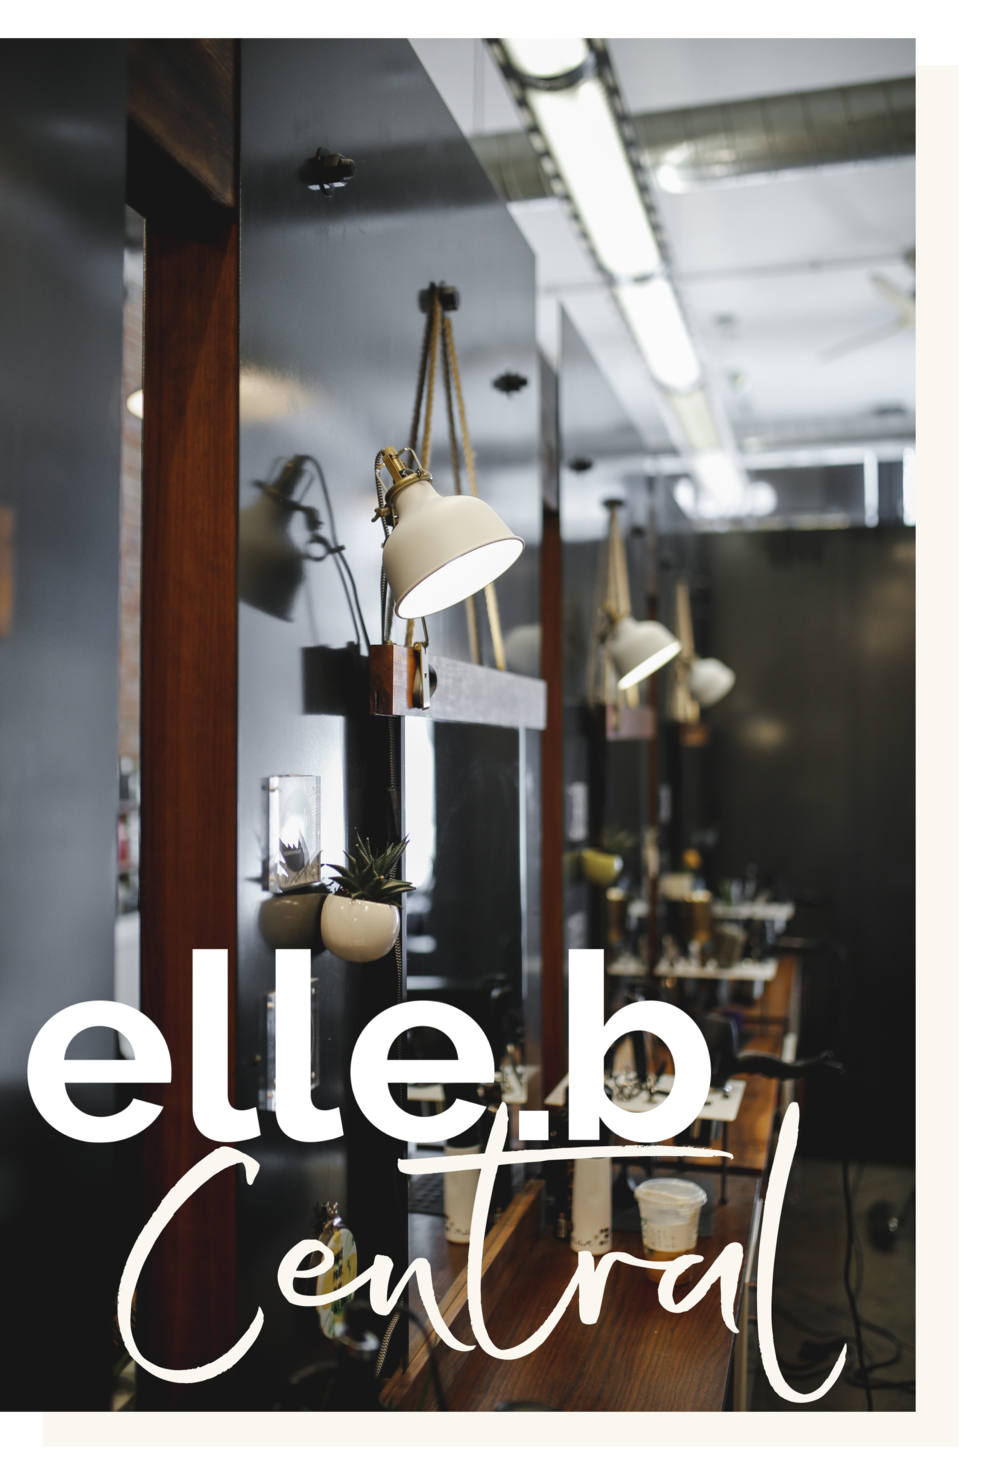 ELLE.B CENTRAL - OUR FLAGSHIP LOCATION, A FULL SERVICE HAIR SALON WITH A TEAM OF HIGHLY TRAINED PROFESSIONALS